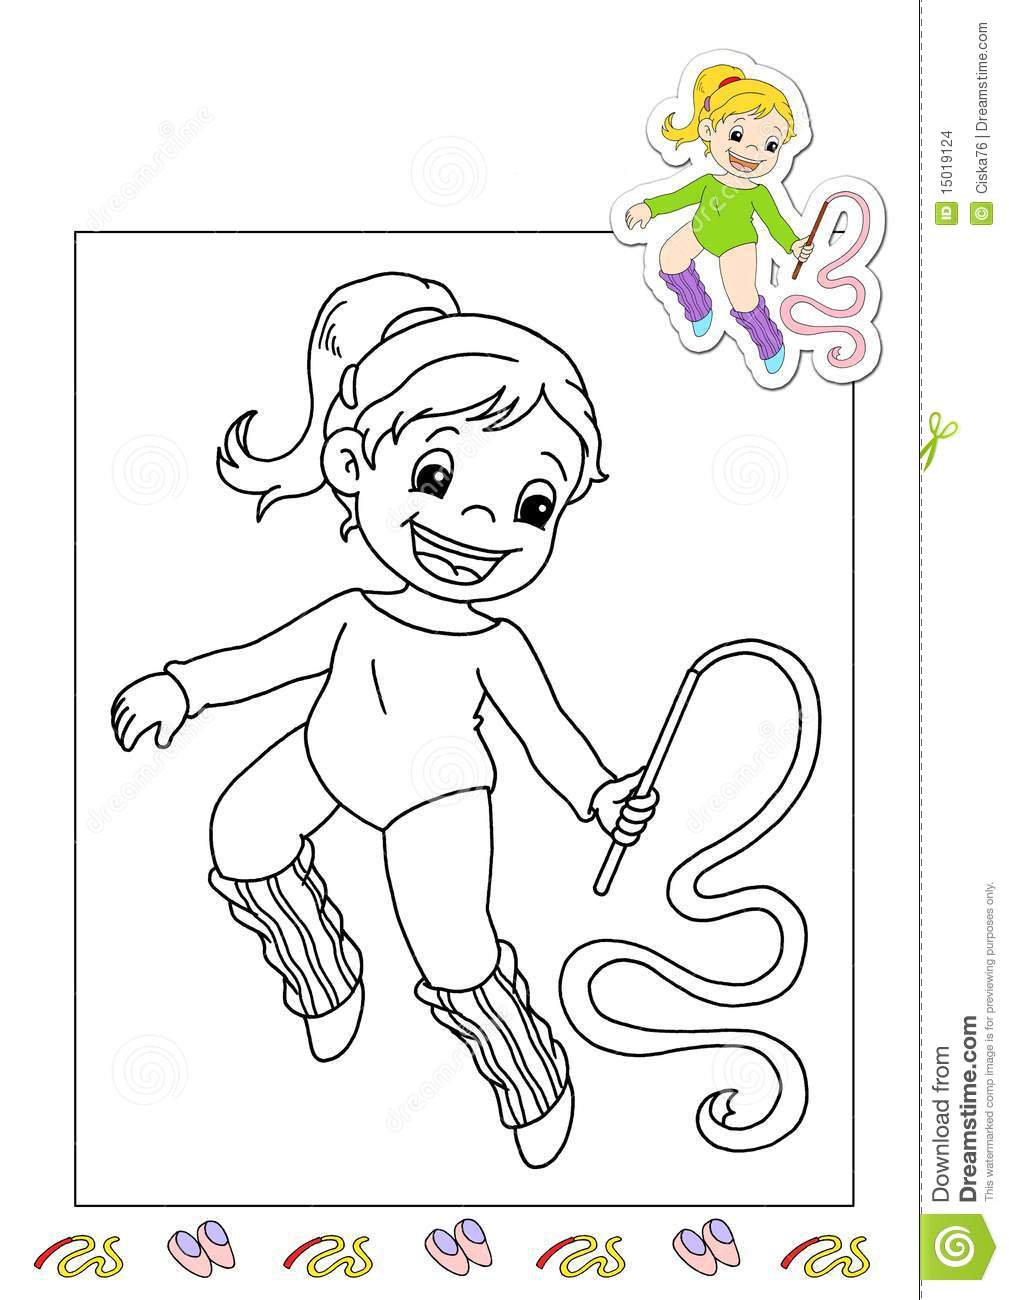 coloring book of the works 4 gymnast stock images image 15019124